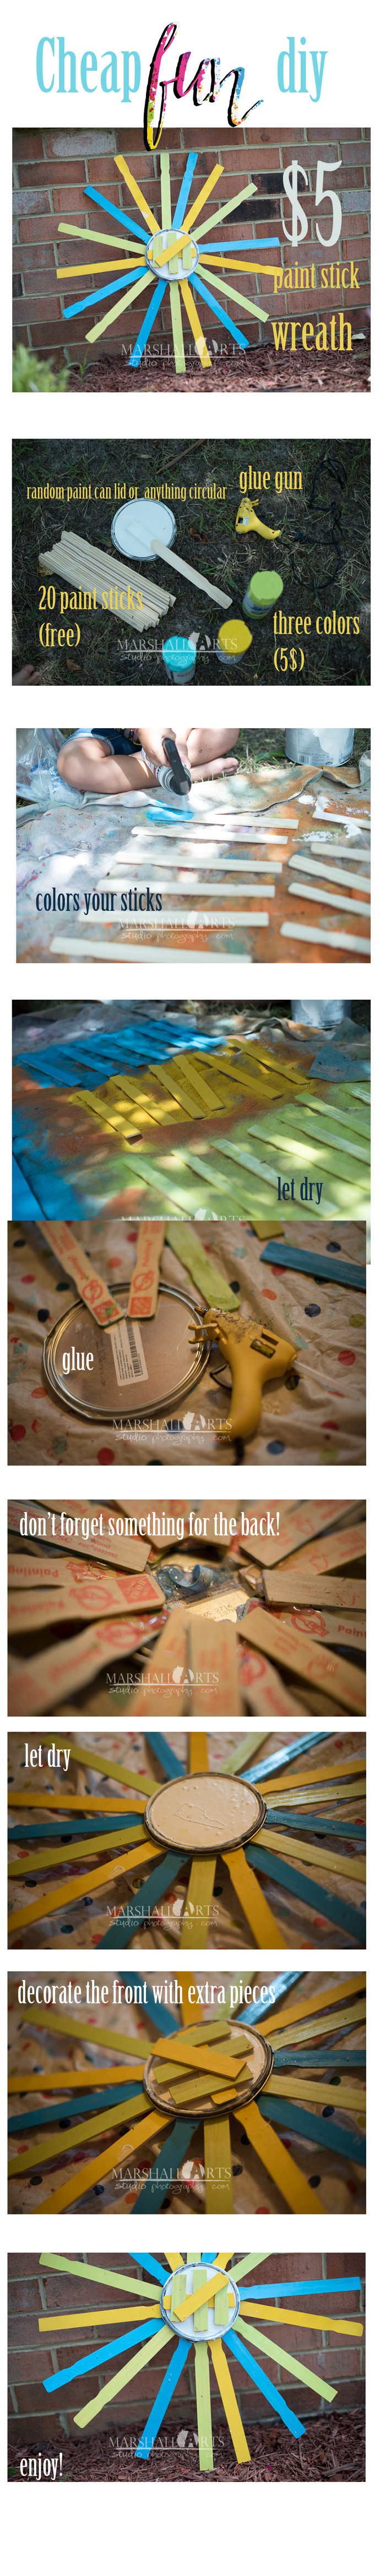 Cheap Fun DIY how to make a 5 dollar paint stick wreathe